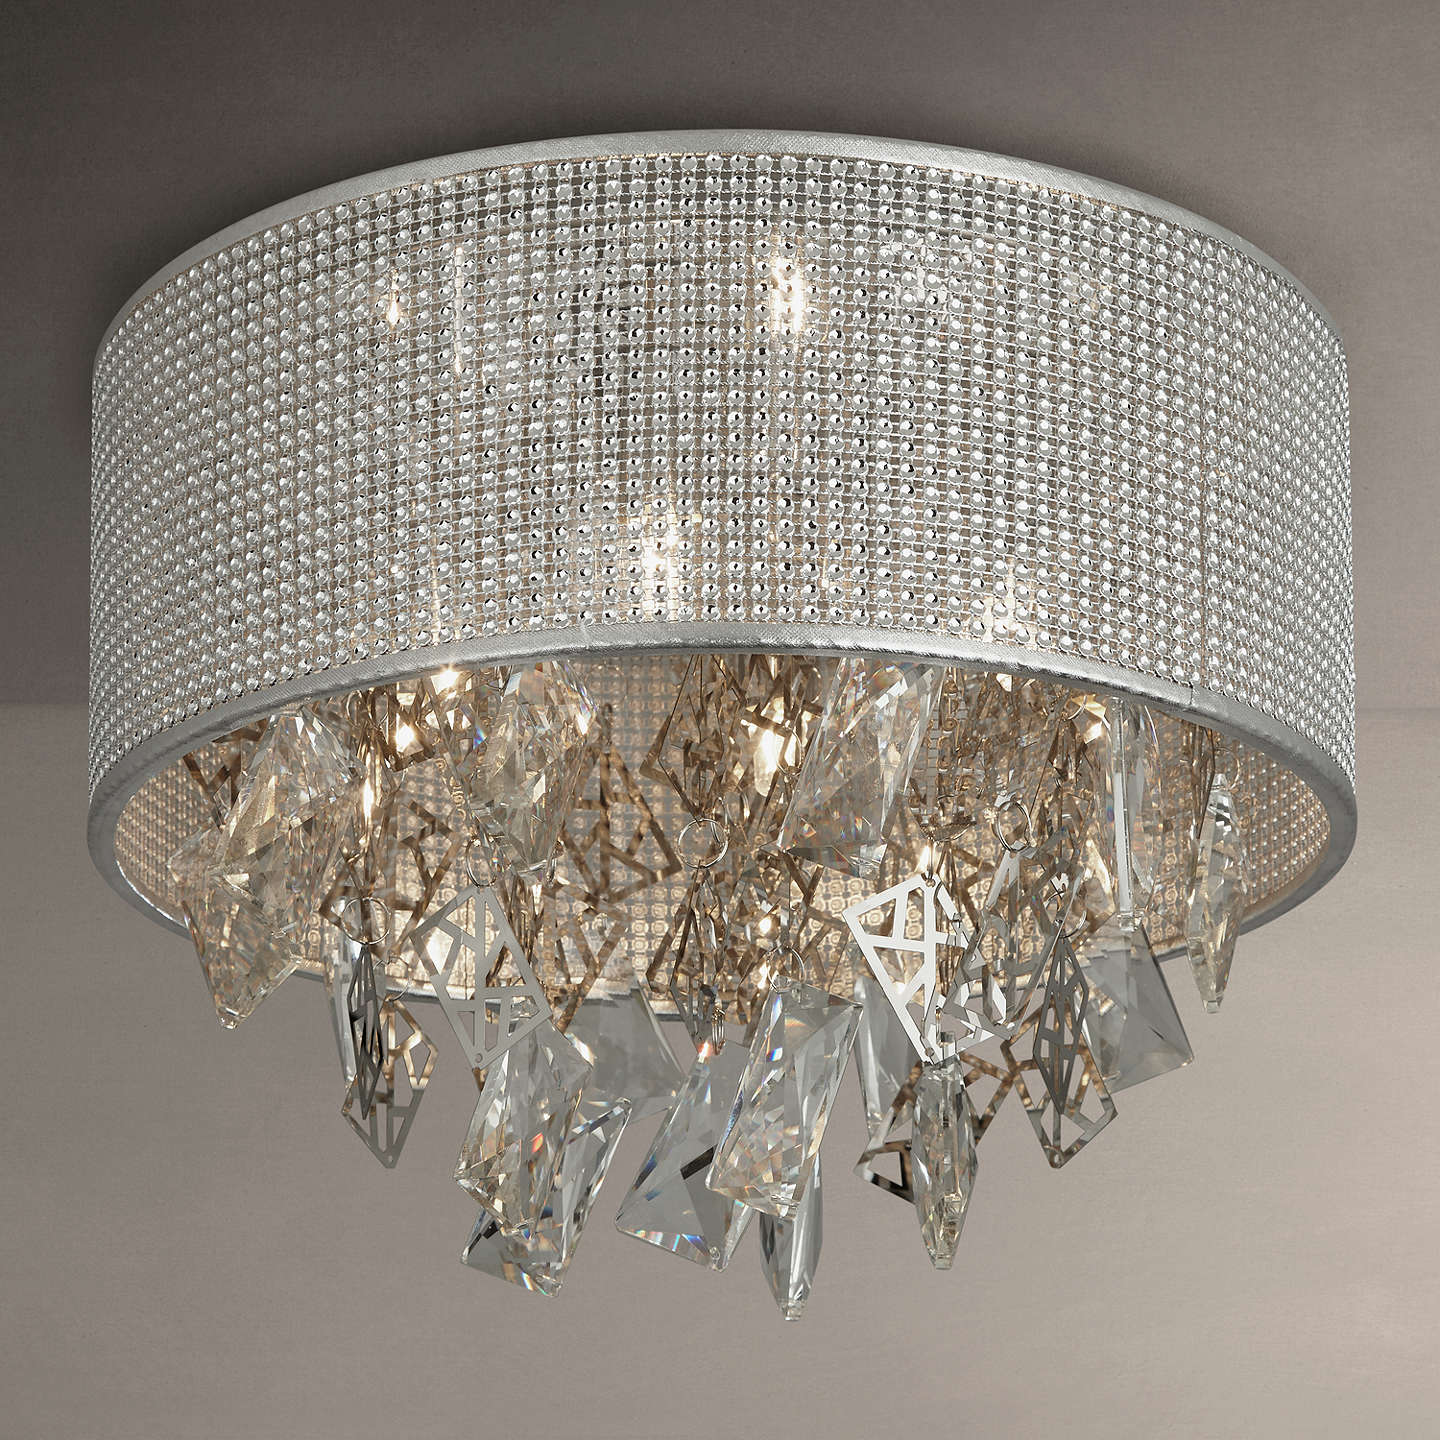 Buyjohn Lewis Tiffany Semi Flush Ceiling Light, Silver Online At